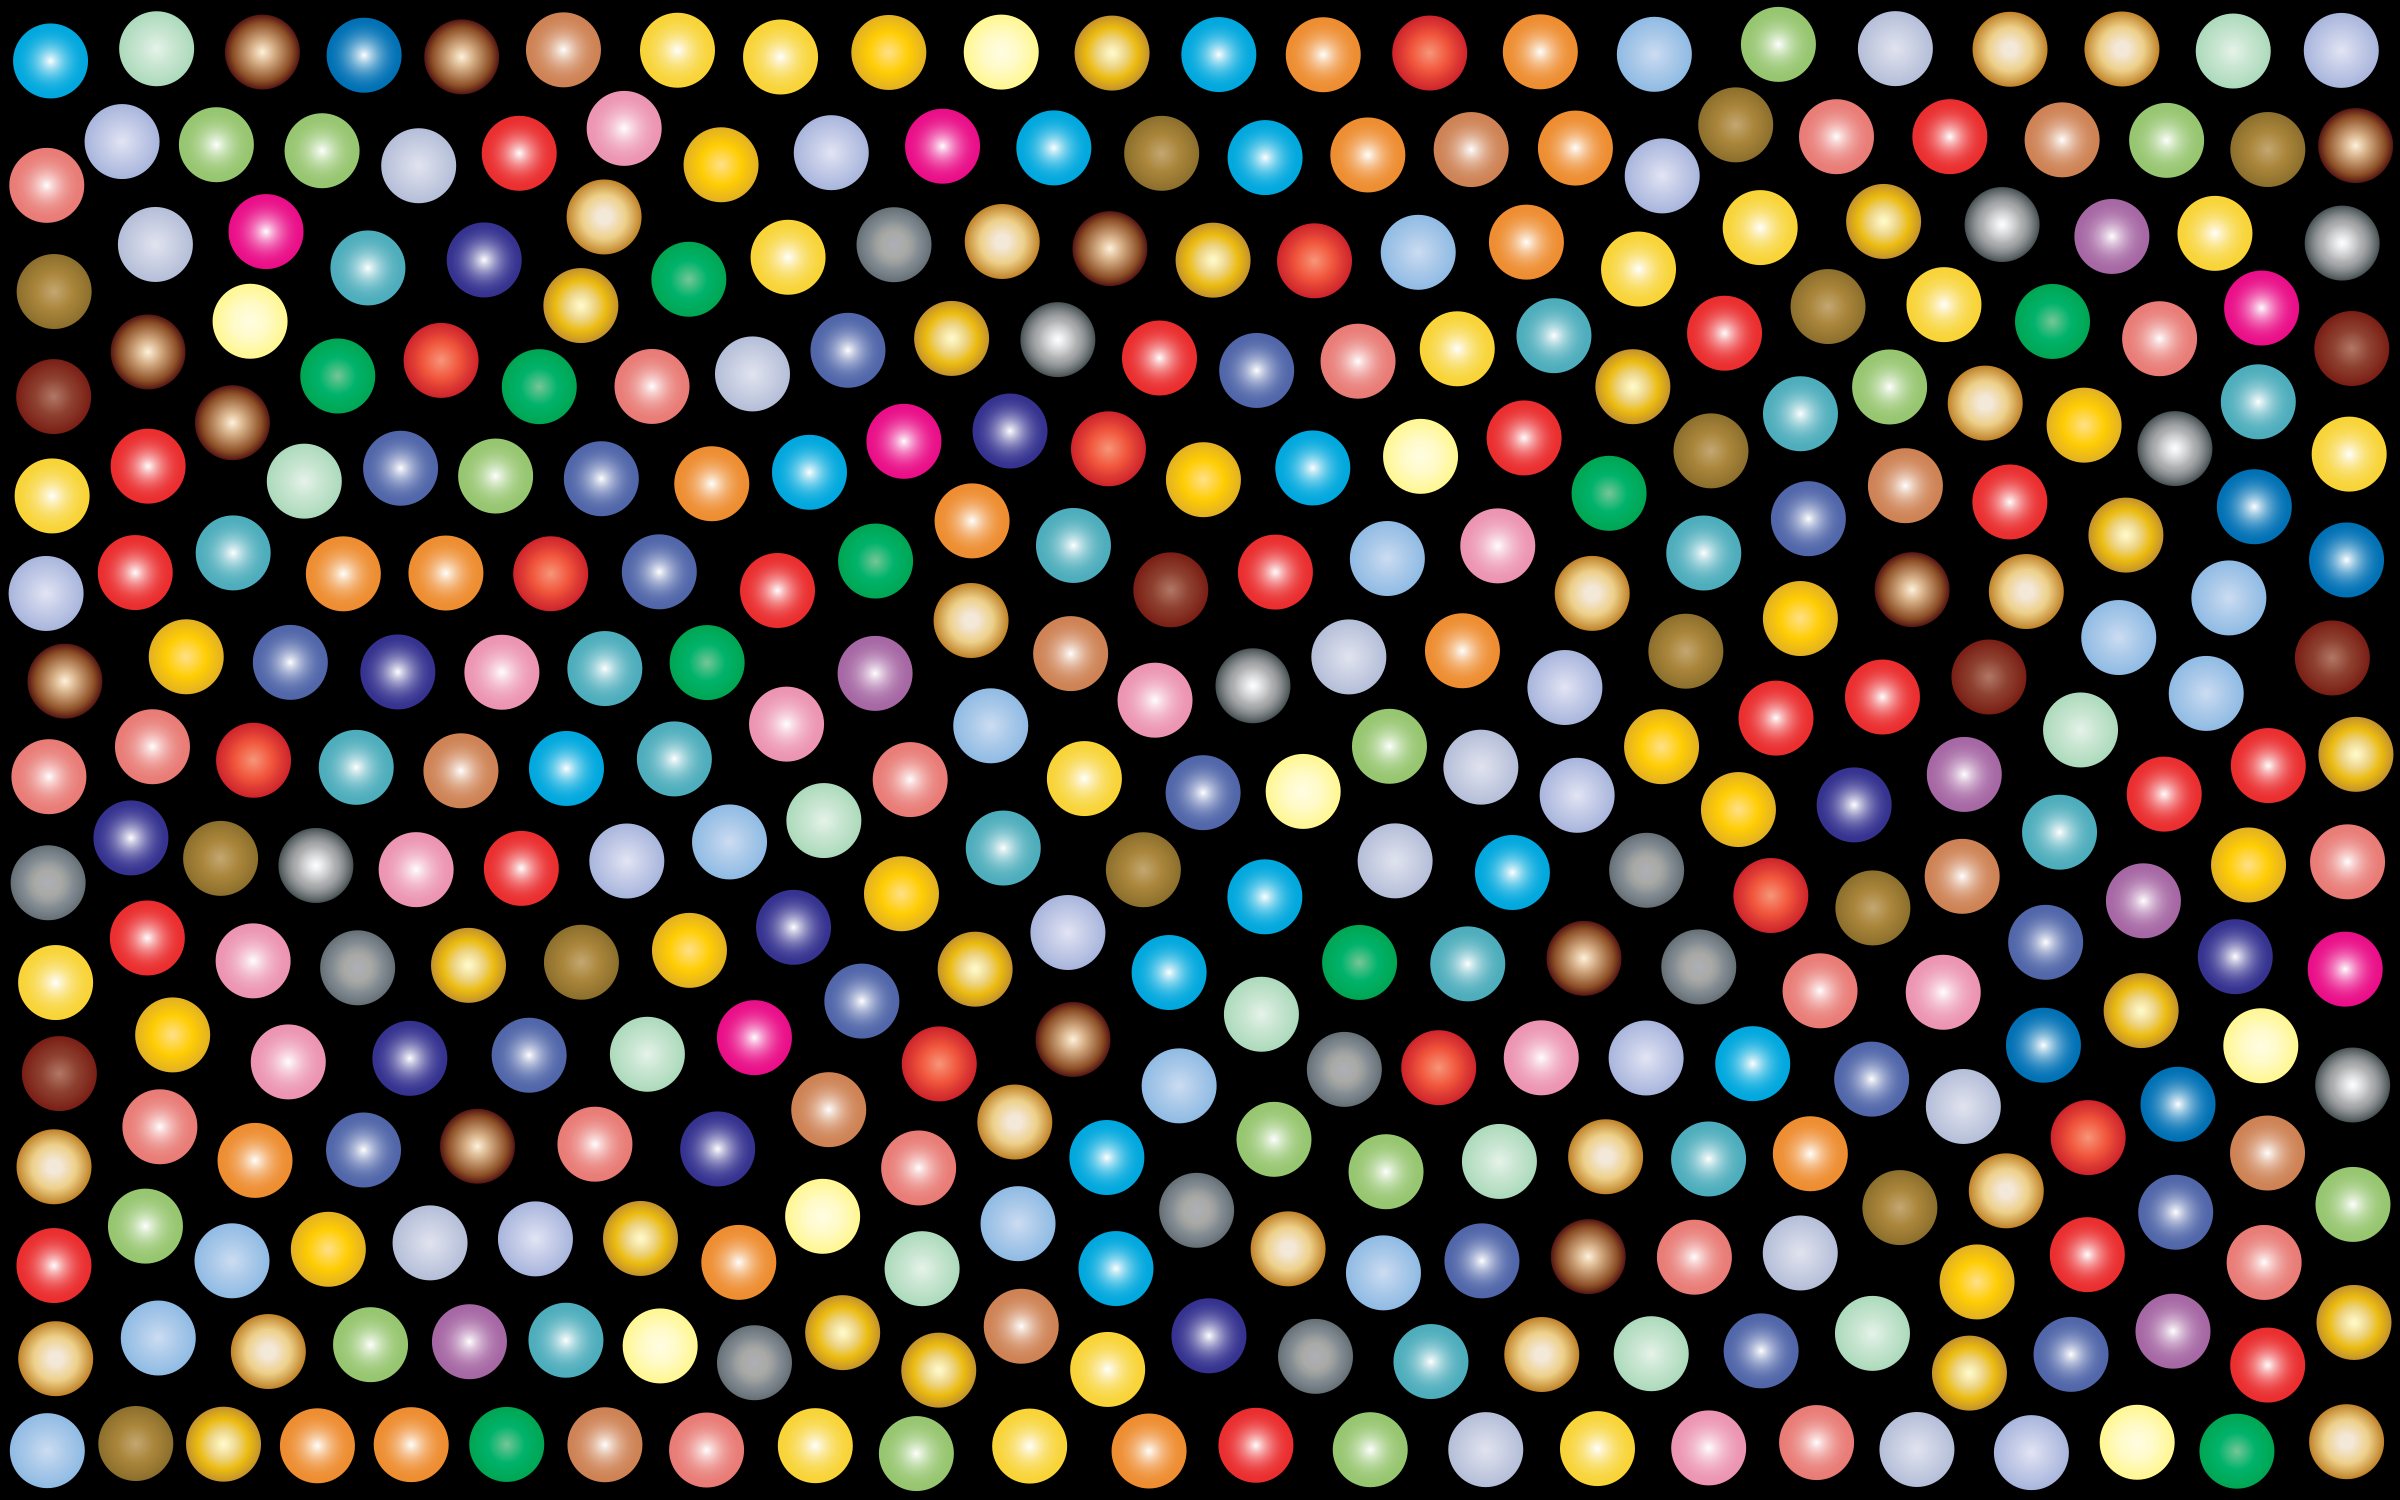 Prismatic Dots Background 2 by GDJ